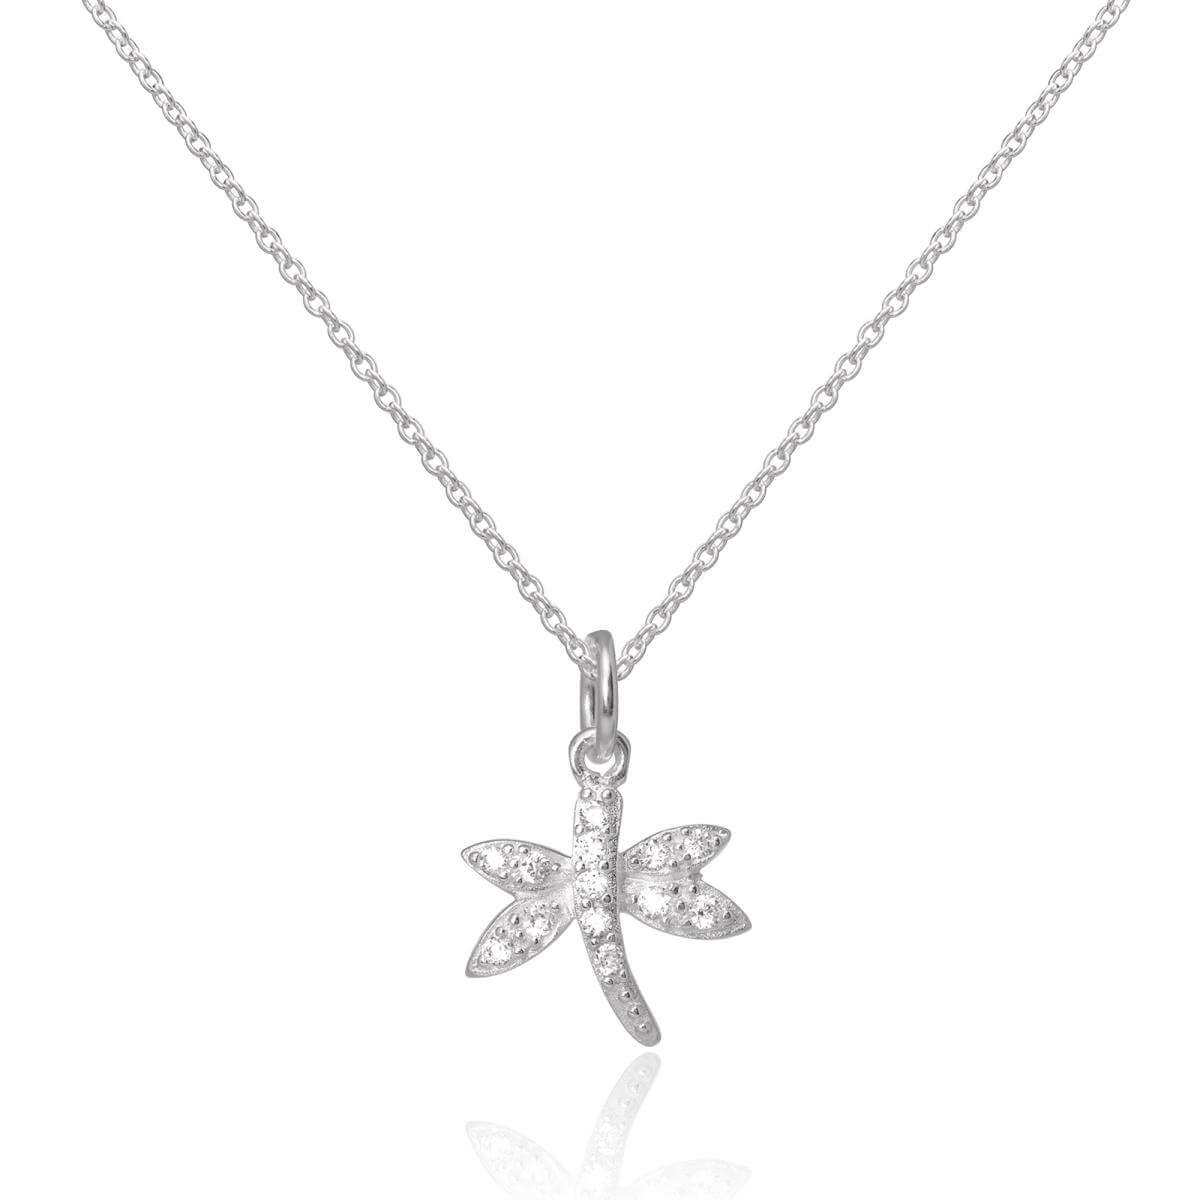 Sterling Silver CZ Crystal Encrusted Dragonfly Pendant Necklace 16 - 22 Inches